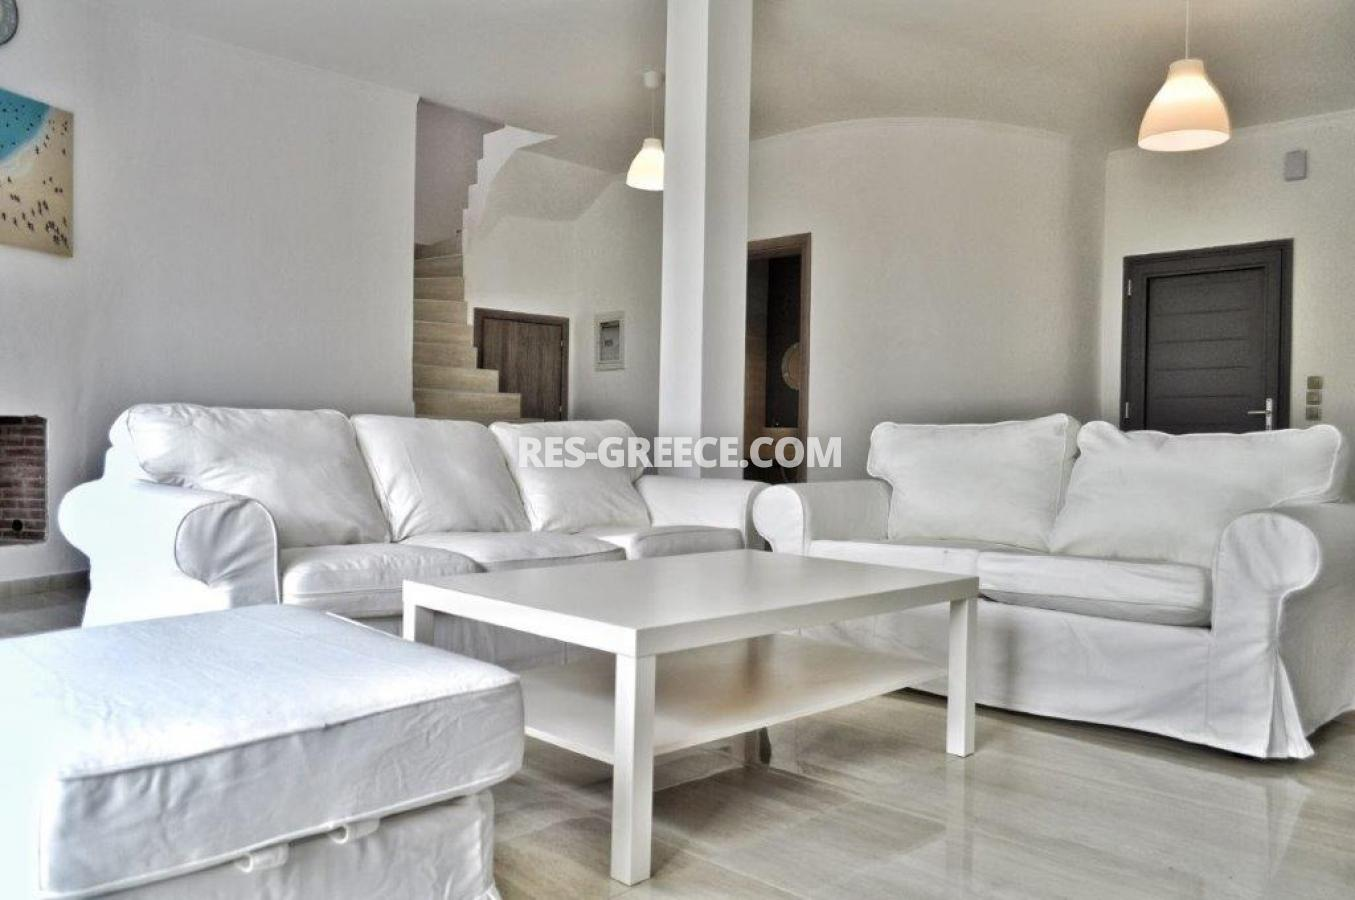 Delfini, Halkidiki-Kassandra, Greece - complex of 2 villas with panoramic view for sale - Photo 18